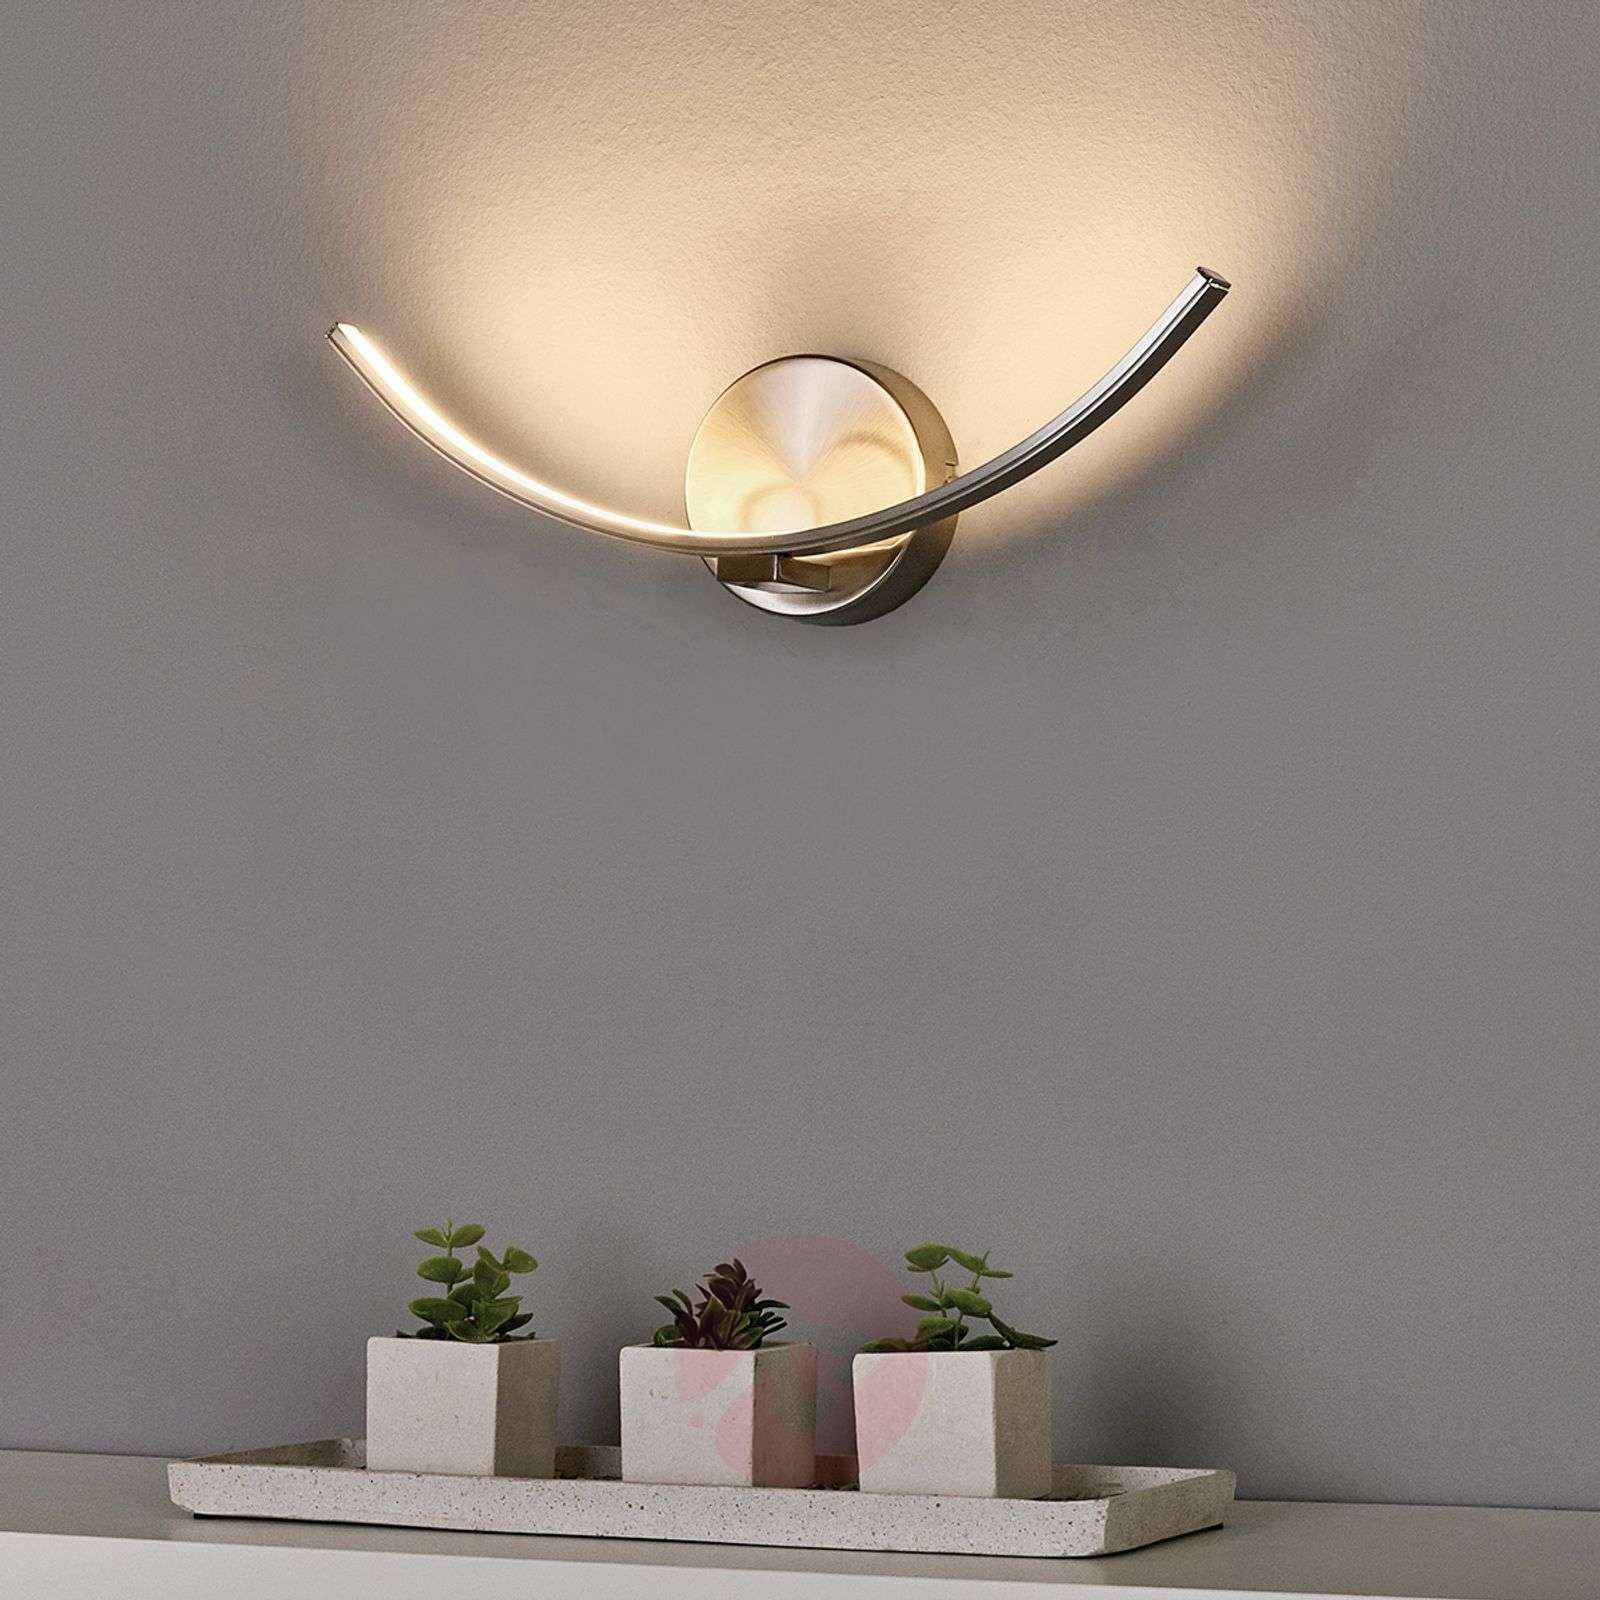 Curved Led Wall Lamp Iven Lights Co Uk